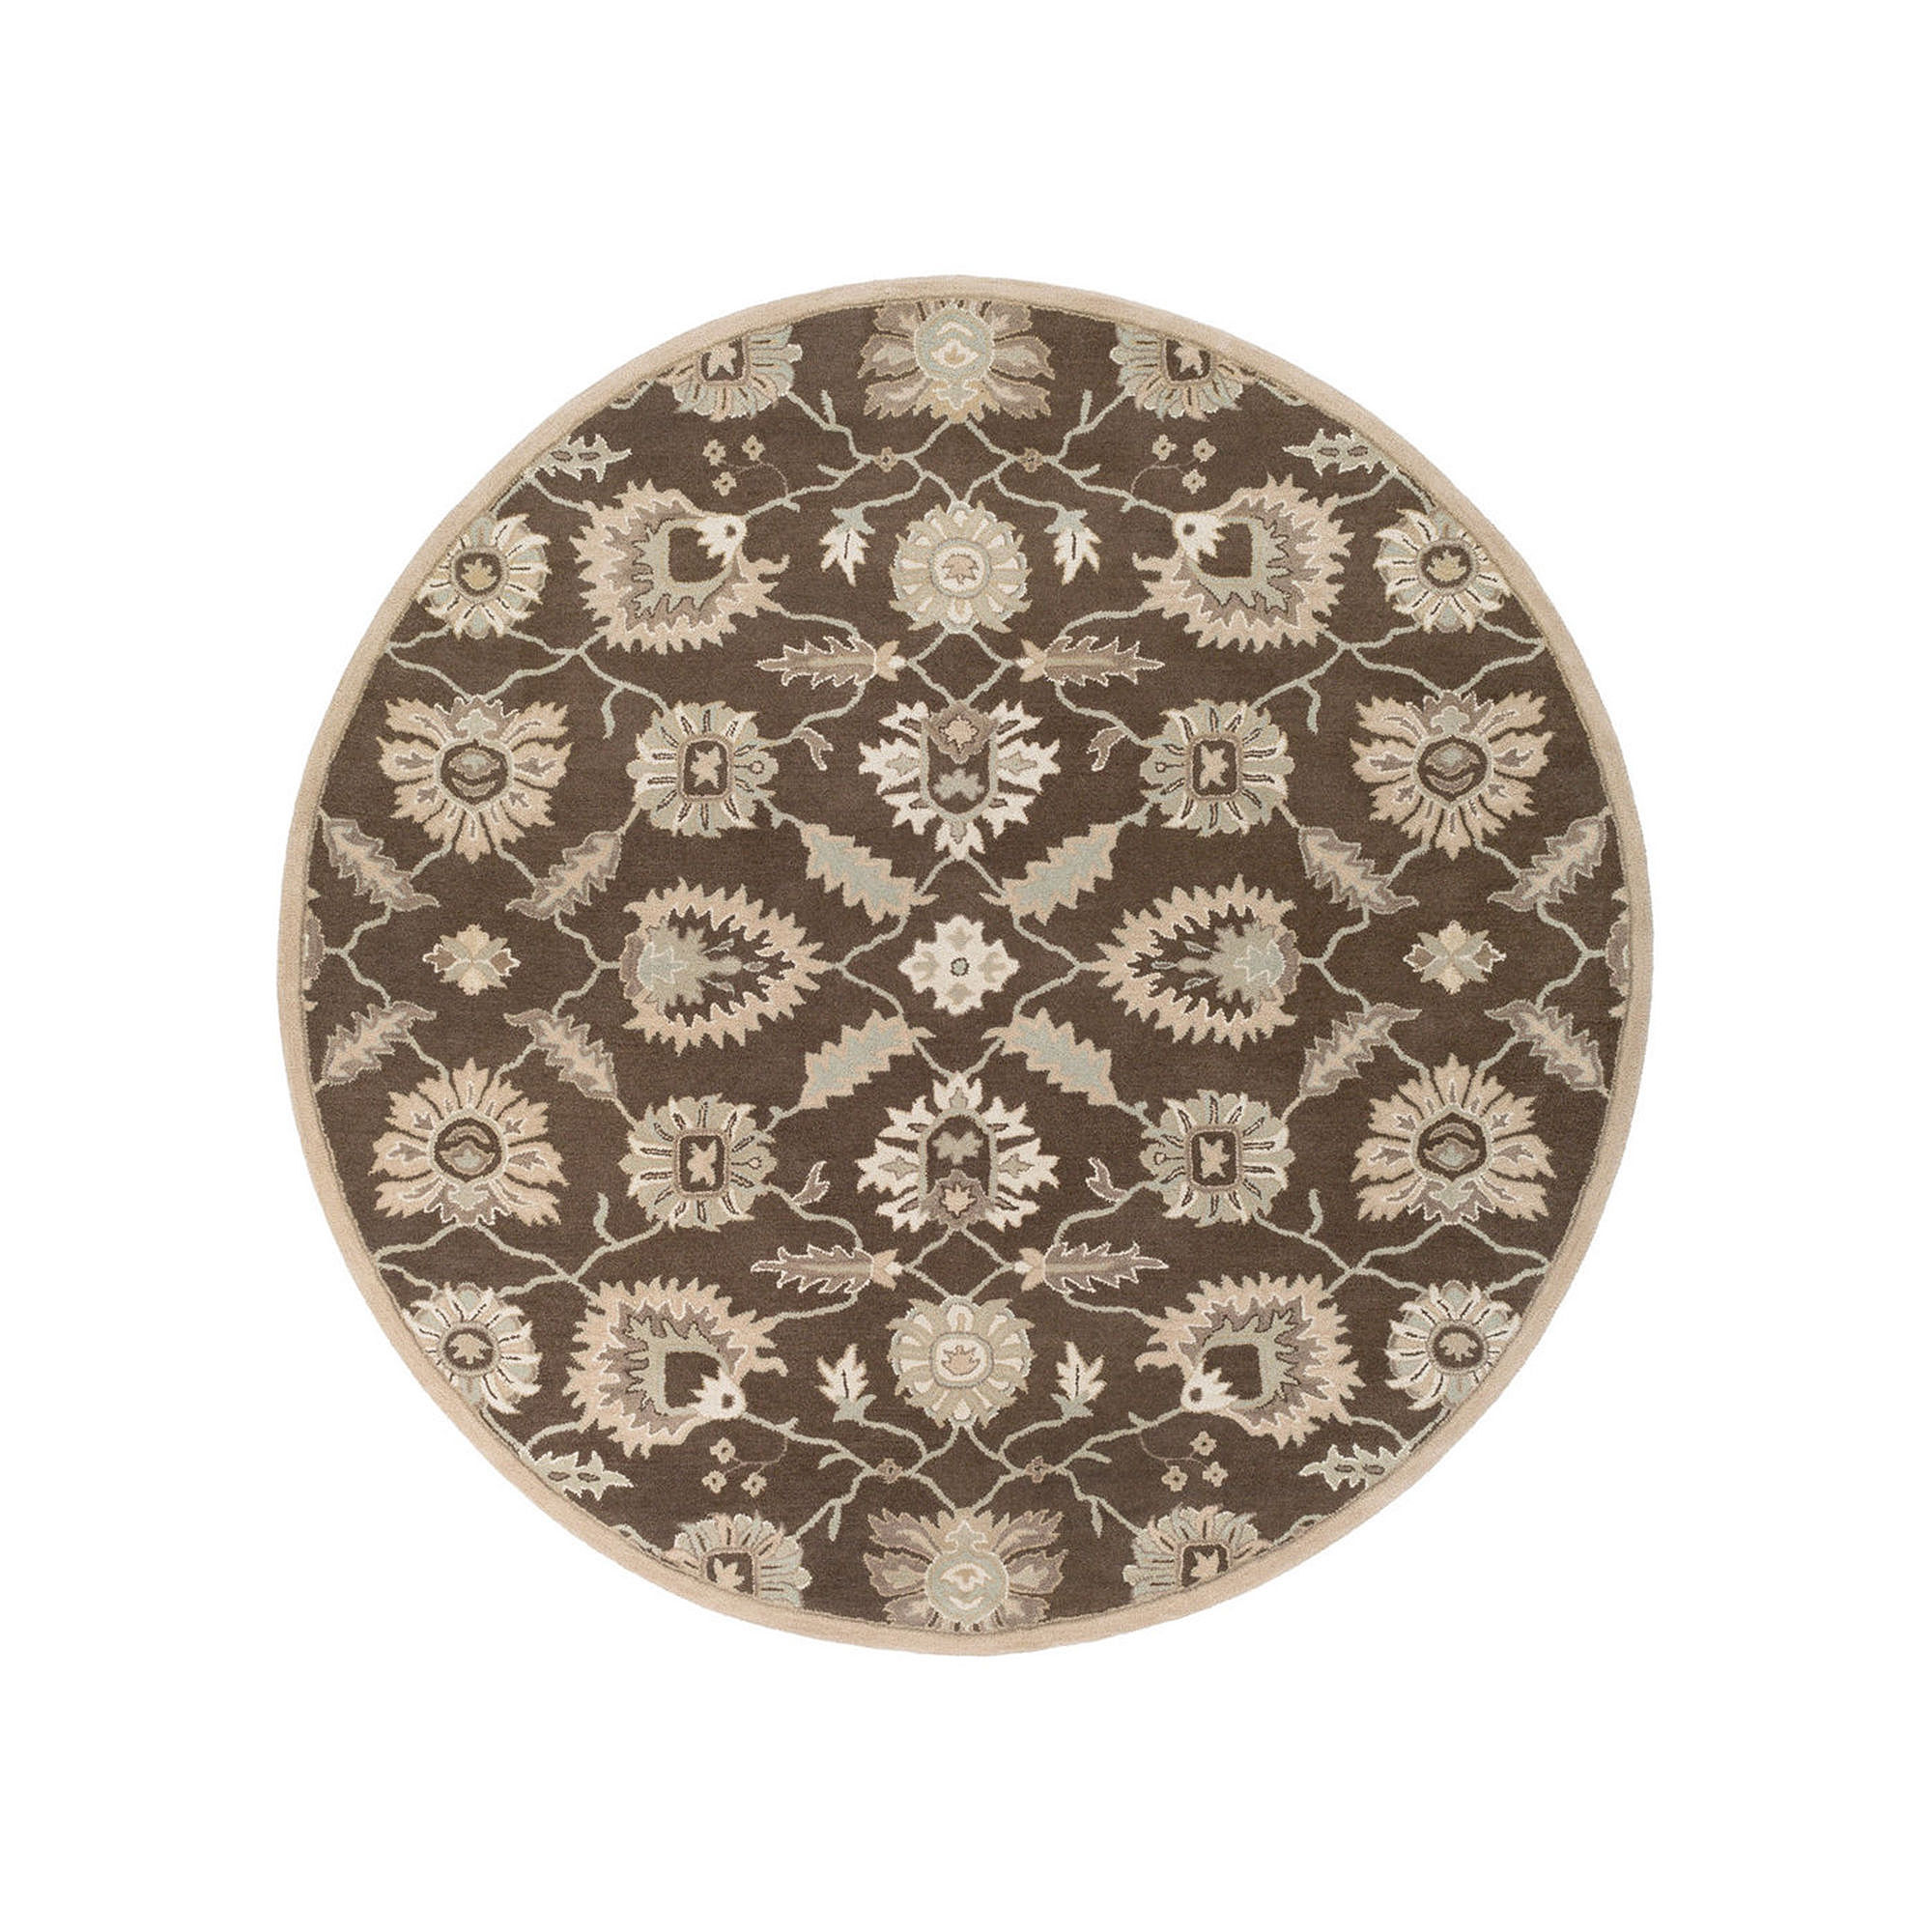 Decor 140 Eckbert Hand Tufted Round Rugs